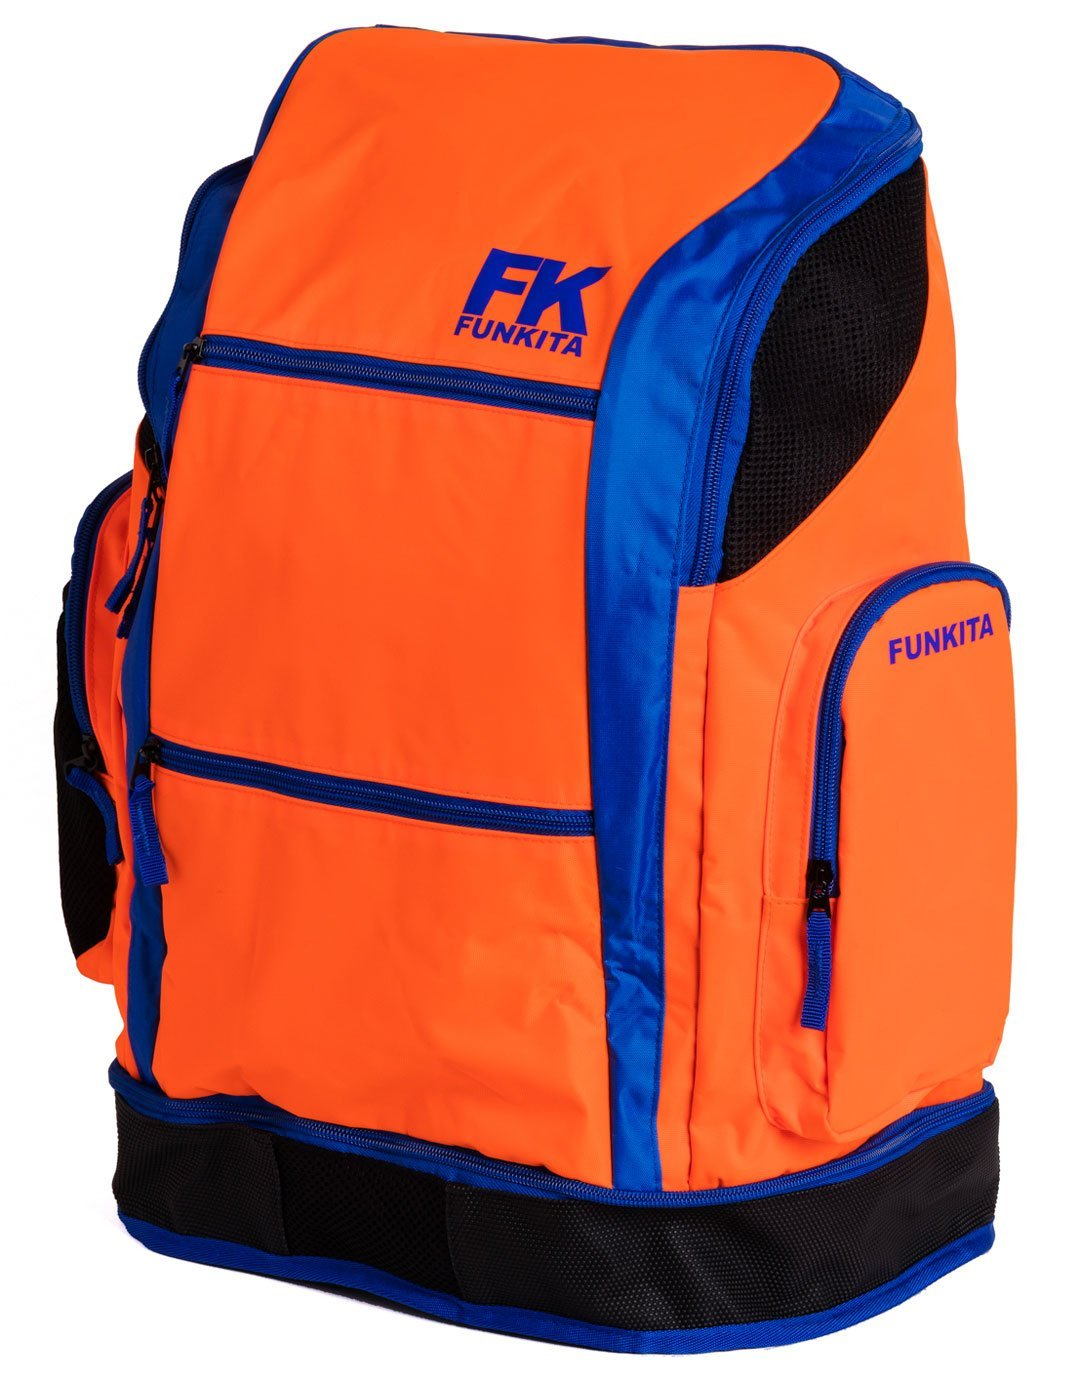 durable modeling Funkita Sports Swim Fitness School Training Backpack  Rucksack Bag - Orange Blue 3b705c1a05